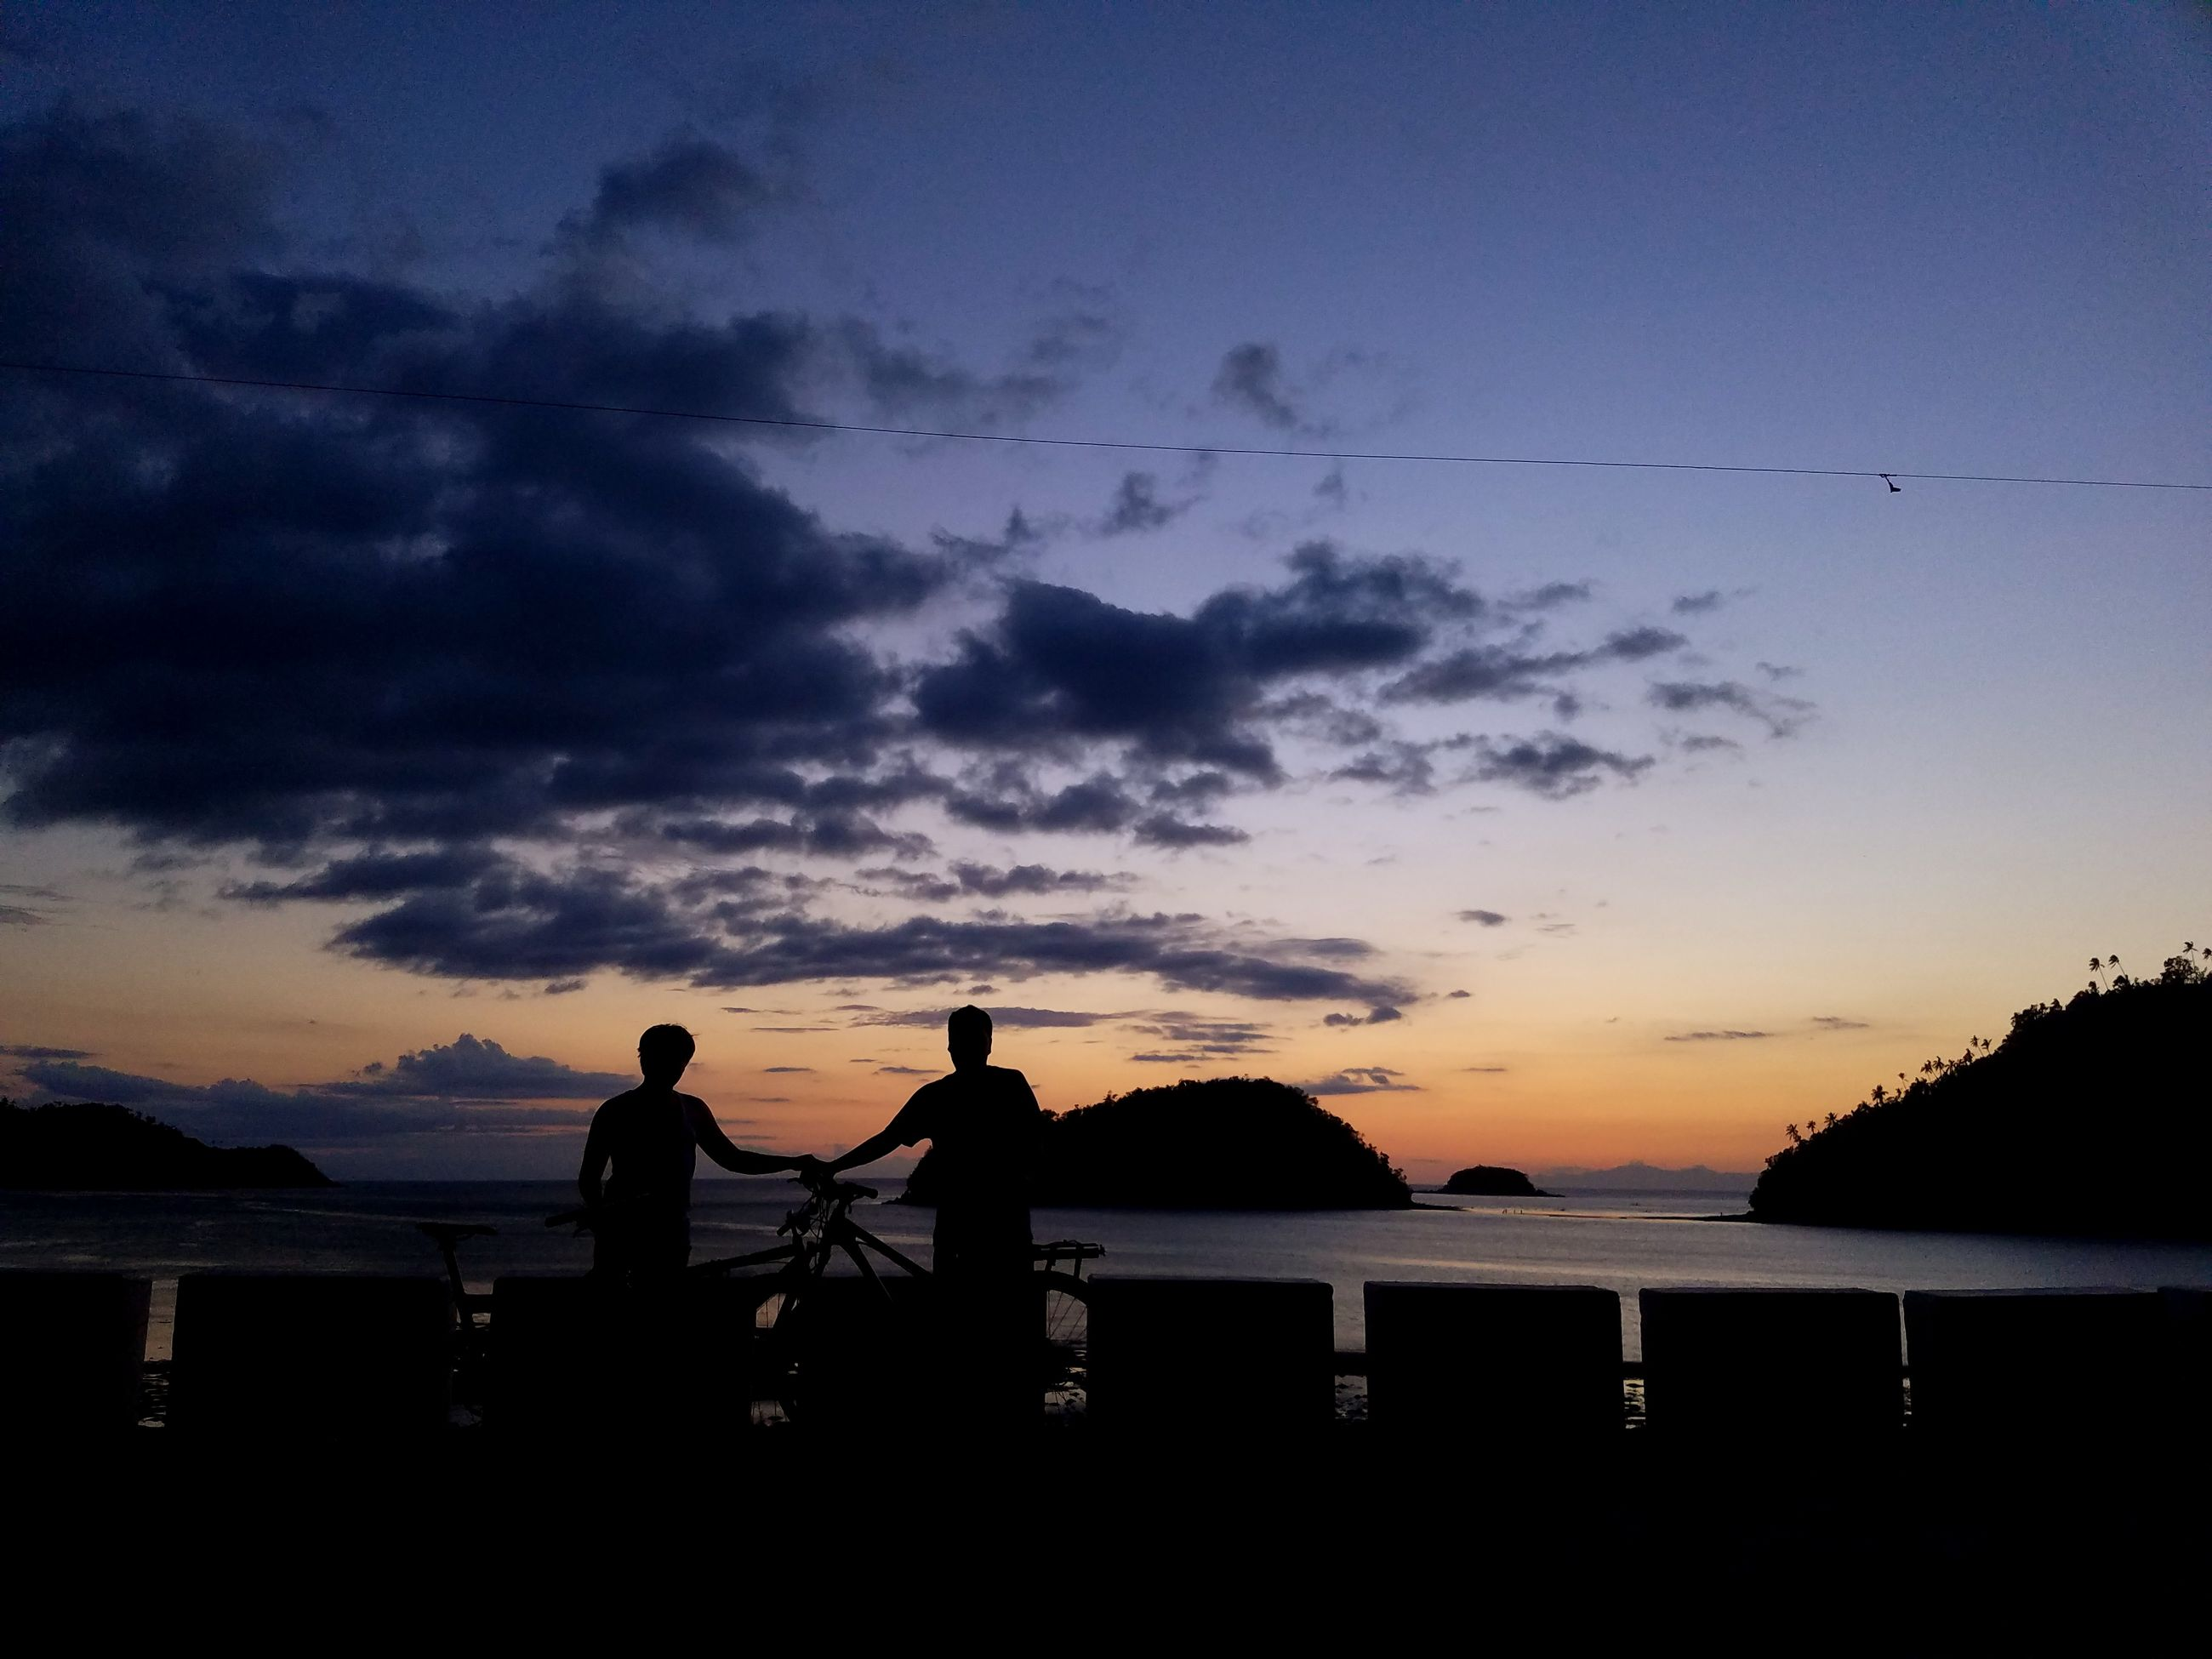 sunset, silhouette, sky, nature, water, beauty in nature, outdoors, cloud - sky, scenics, sea, tranquil scene, fishing, dusk, tranquility, real people, two people, men, nautical vessel, standing, tree, day, people